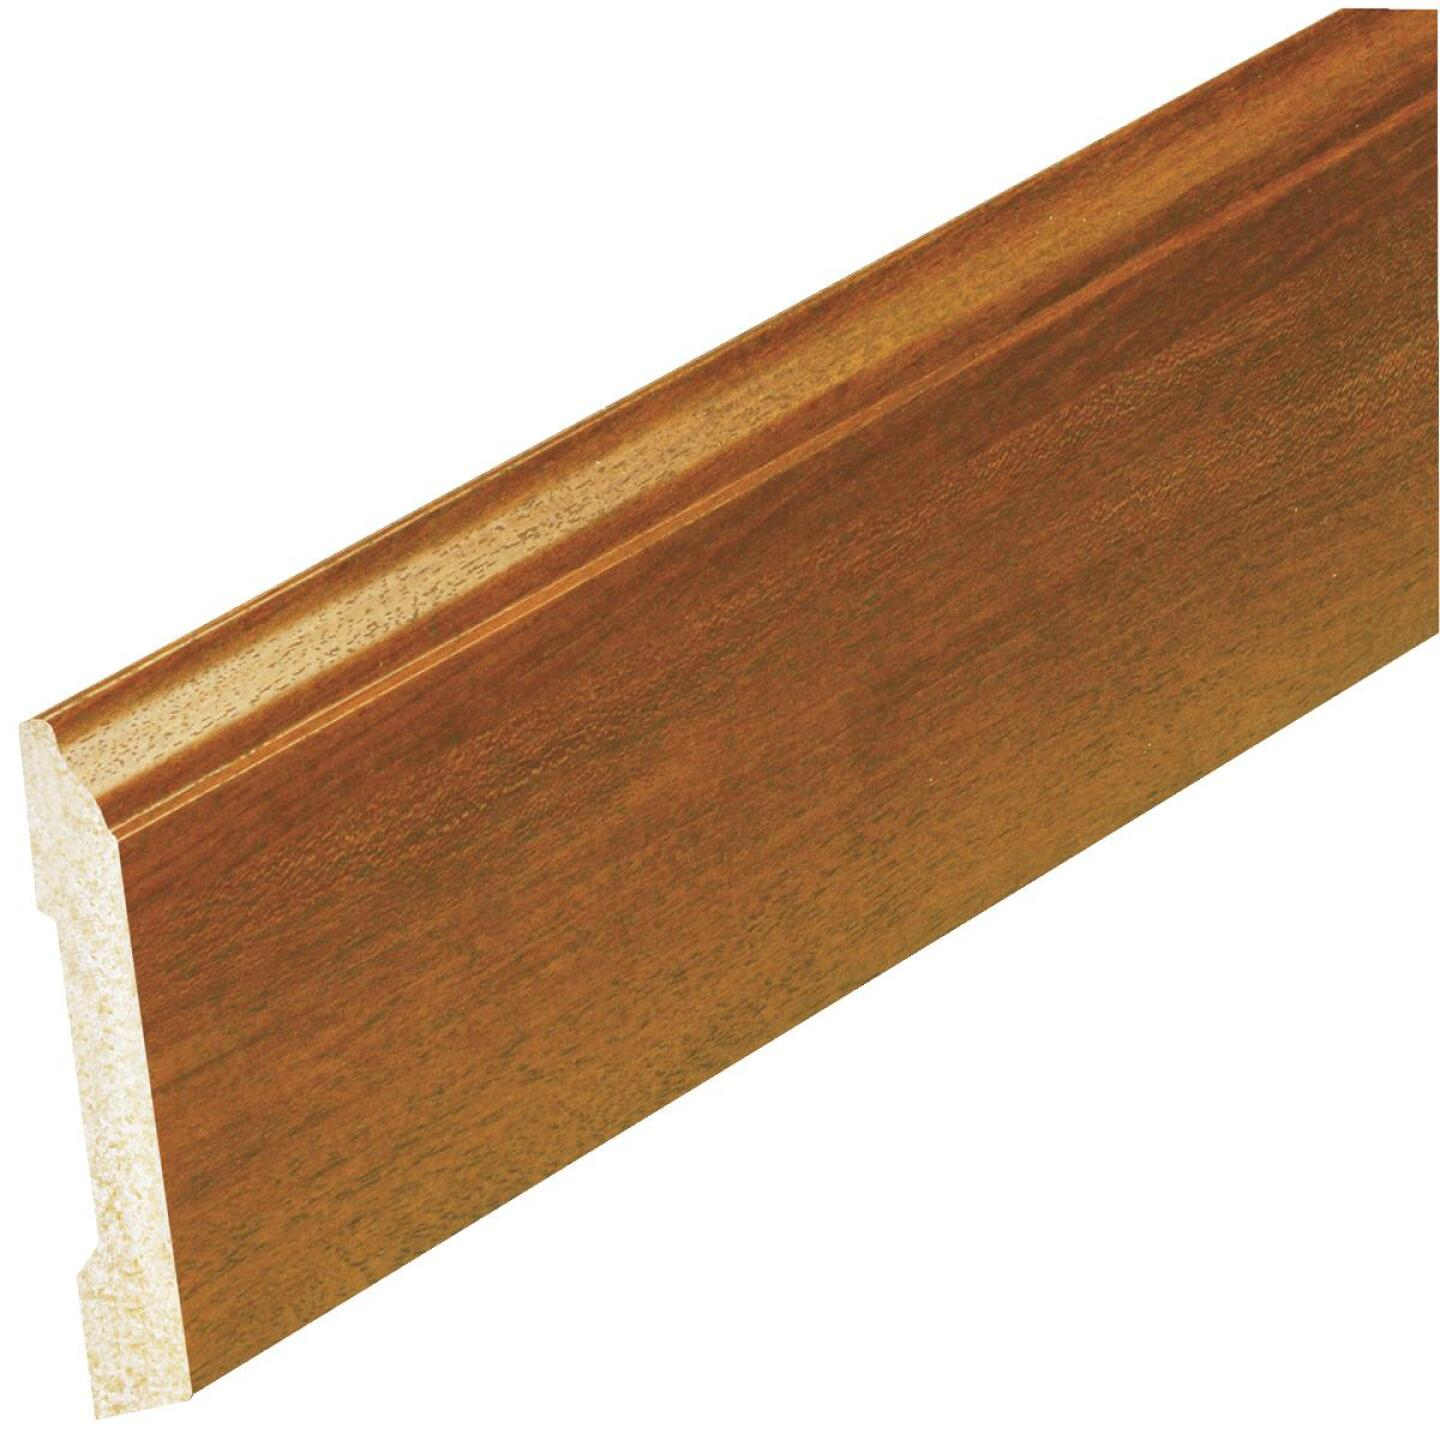 Inteplast Building Products 1/2 In. W. x 3-7/16 In. H. x 8 Ft. L. Independence Cherry Polystyrene Colonial Base Molding Image 2